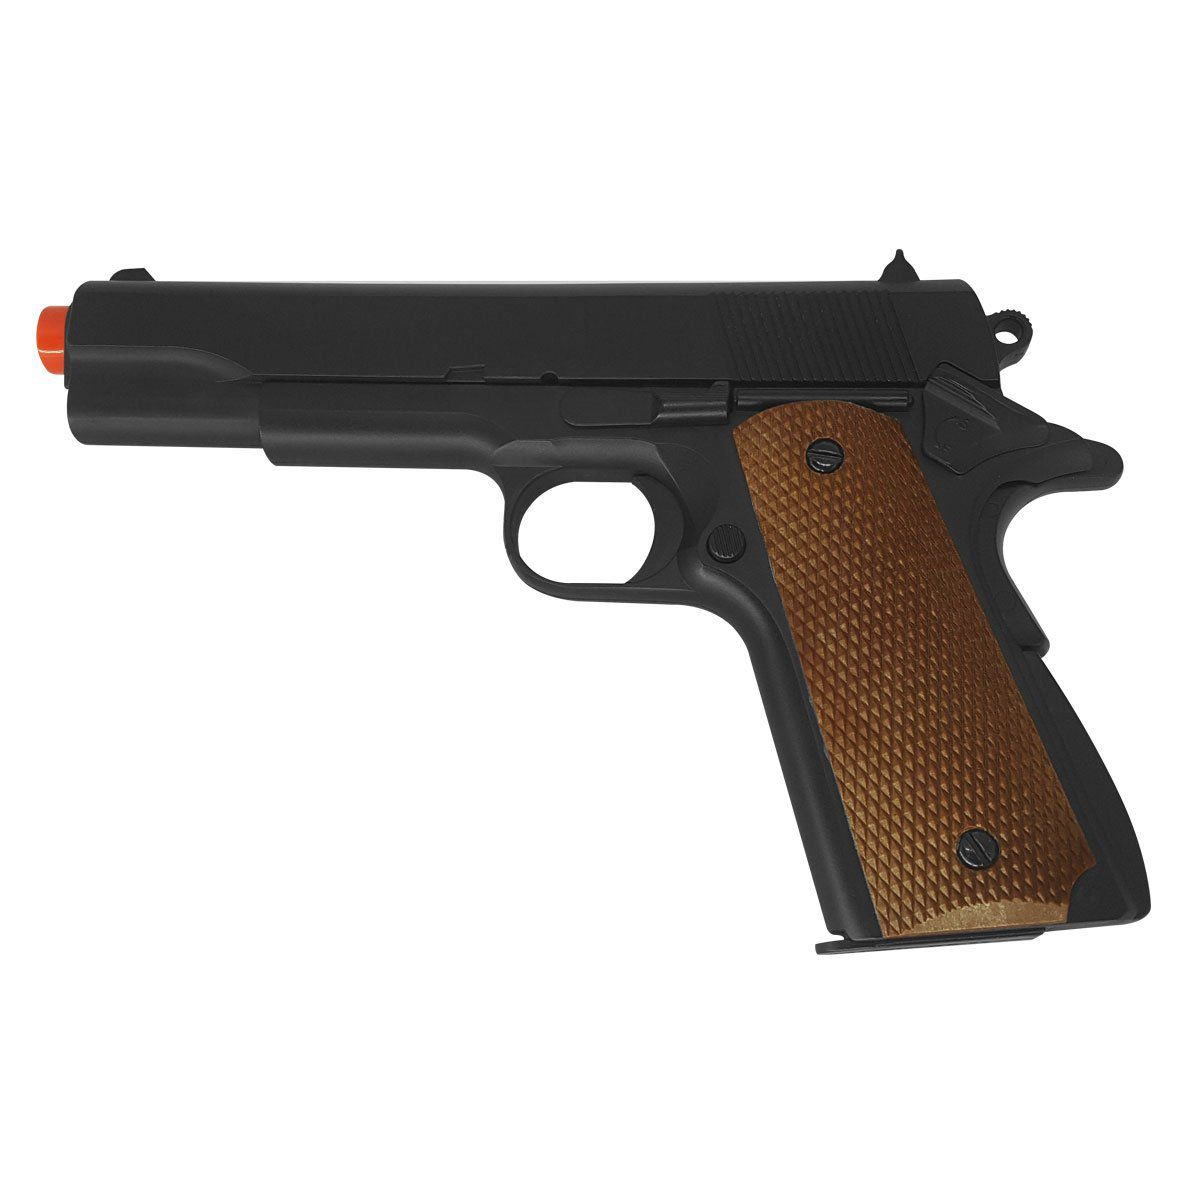 Pistola de Airsoft Cybergun 1911 A1 Heavy Weight Spring 6mm